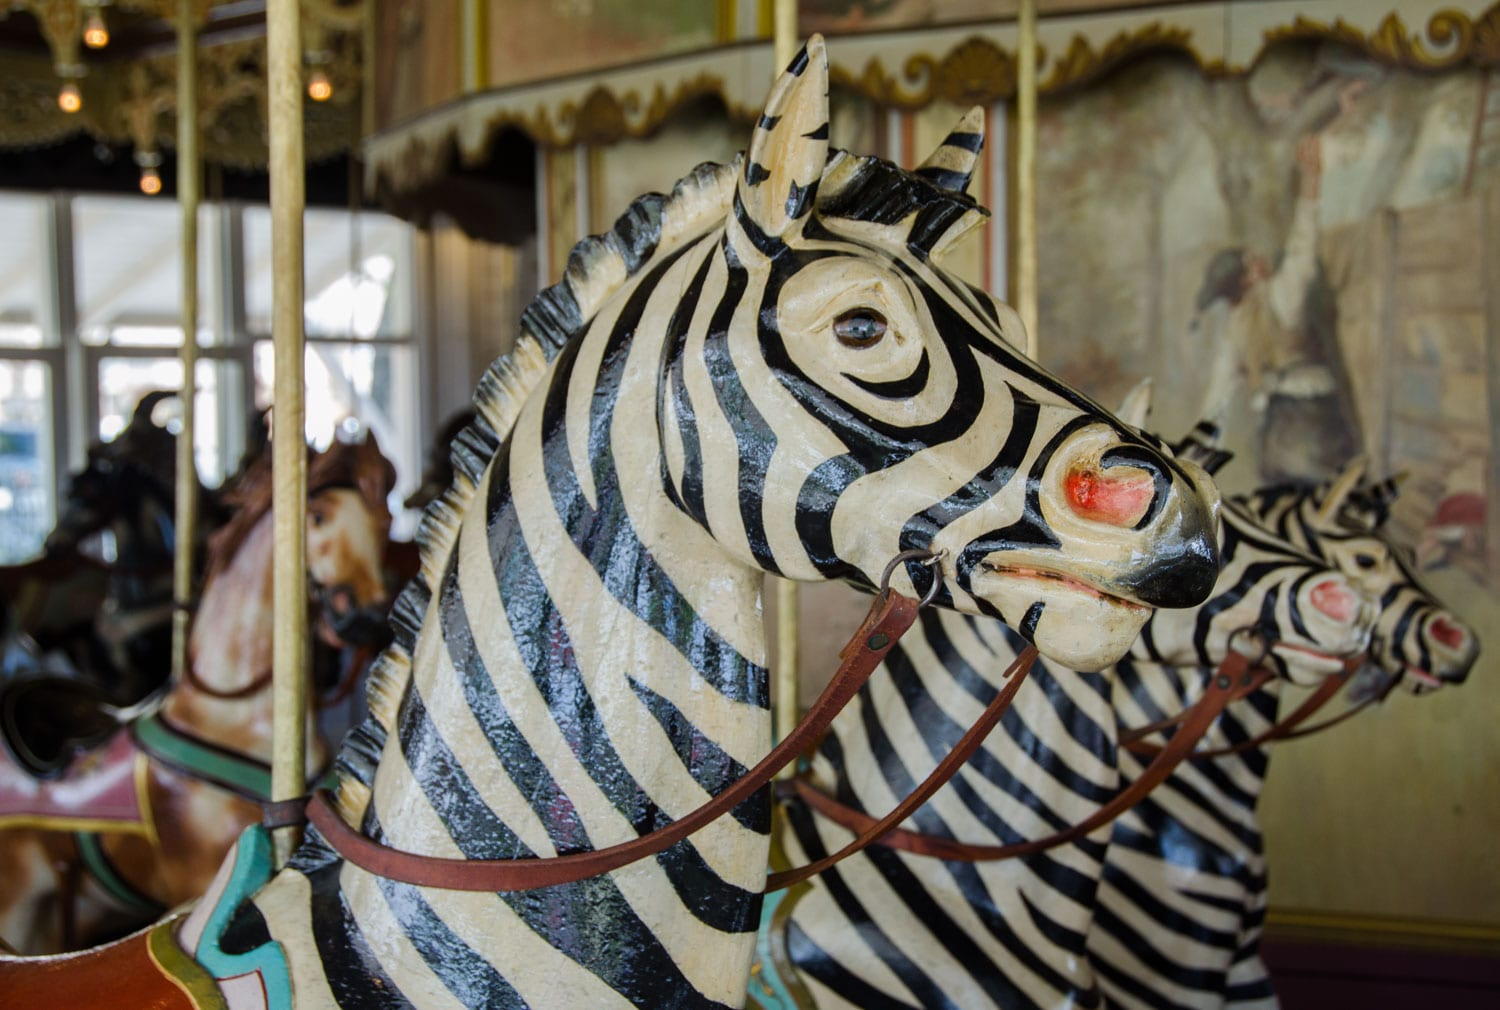 Kit Carson County Carousel Burlington CO Zebras